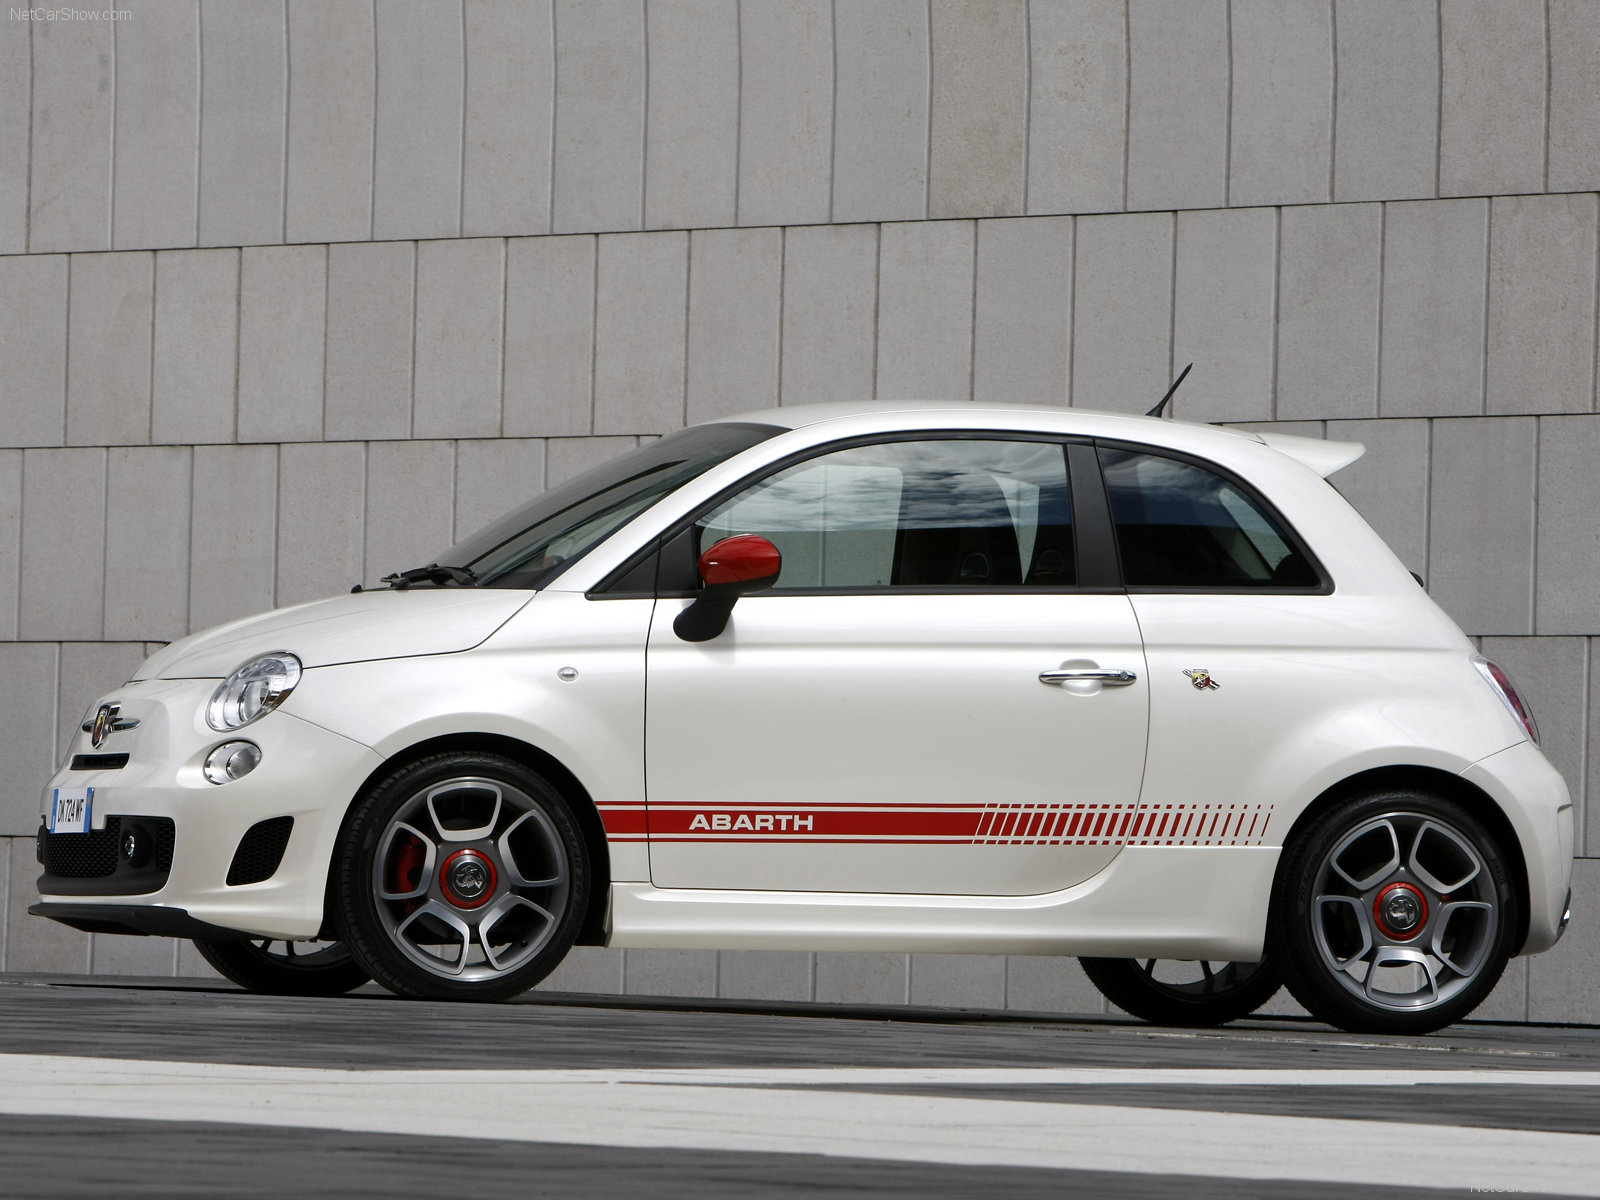 ... Fiat 500_Abarth_mp21_pic_58286 fiat 500 abarth engine diagram fiat  engine problems and solutions 2015 fiat 500 wiring